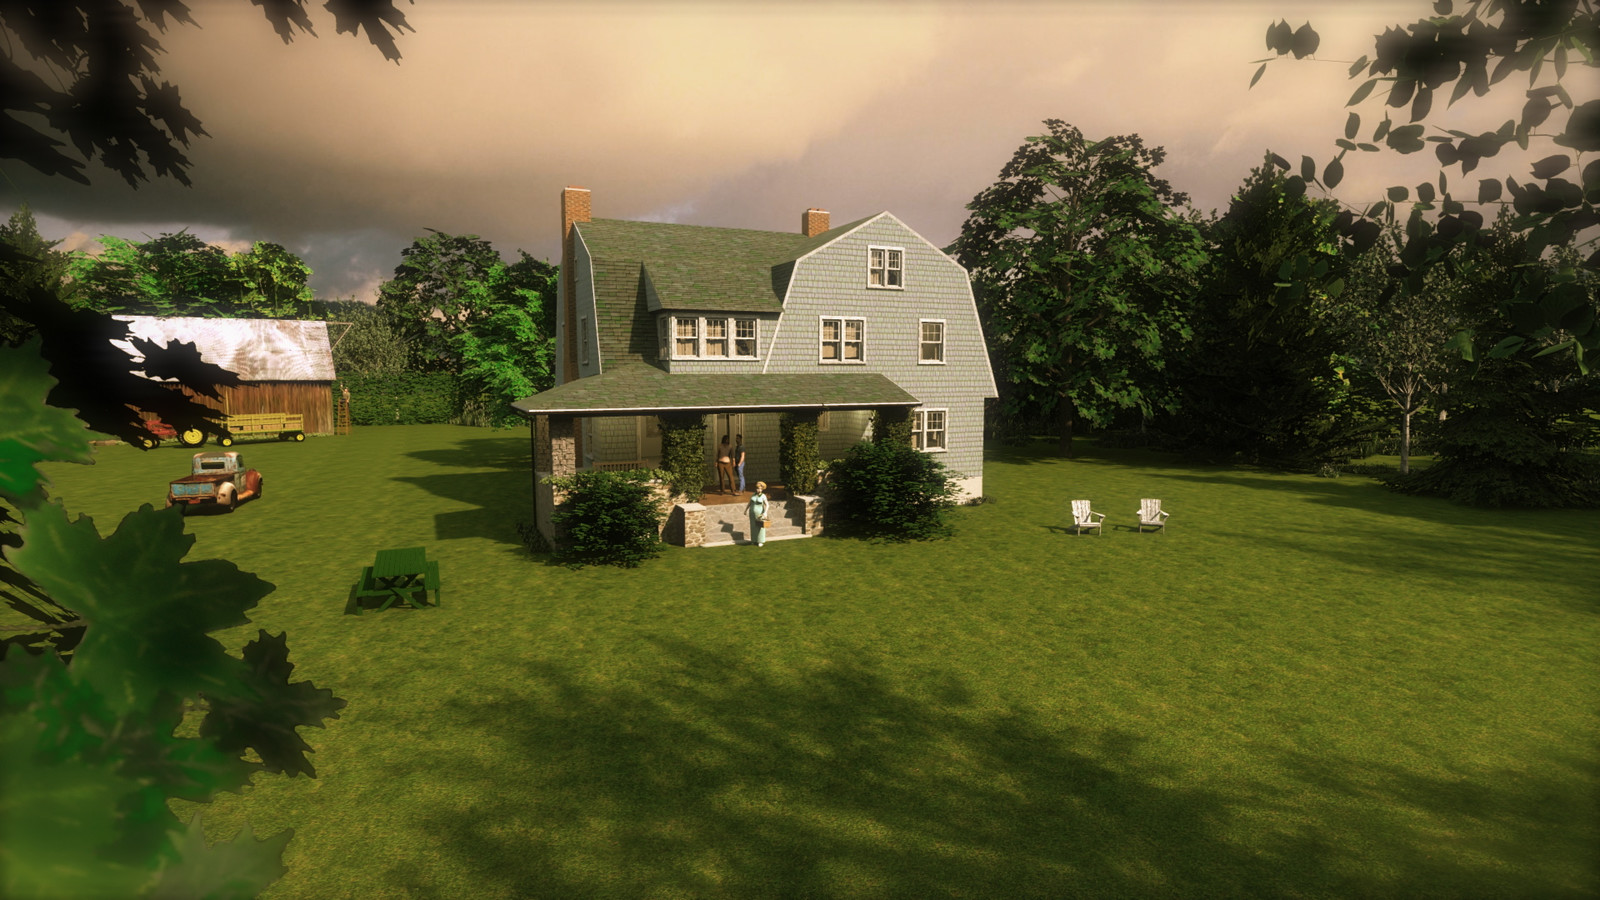 """""""Mason Farm - Smells Like Rain"""" Summer Sun Collection   13 Masonfarm HD1080 07 - iP Kodac  """"SketchUp to LayOut"""" The Mason Farm Renders for the launching of the new book """"SketchUp to LayOut"""" http://bit.ly/2j0d0Wh by MasterSketchup."""